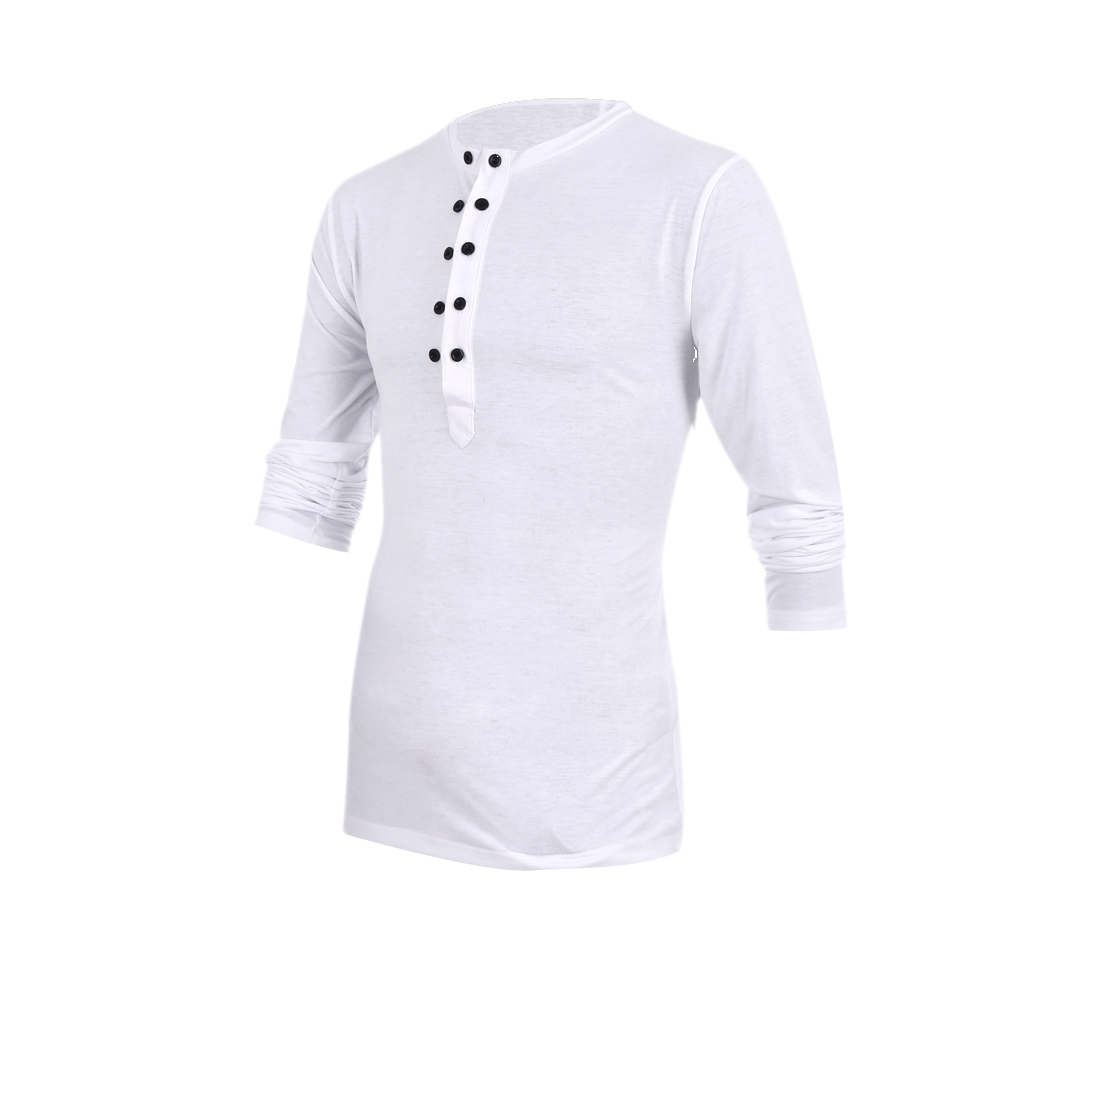 Mans Chic Double-Breasted Front Design Pure Color White Top Shirt M